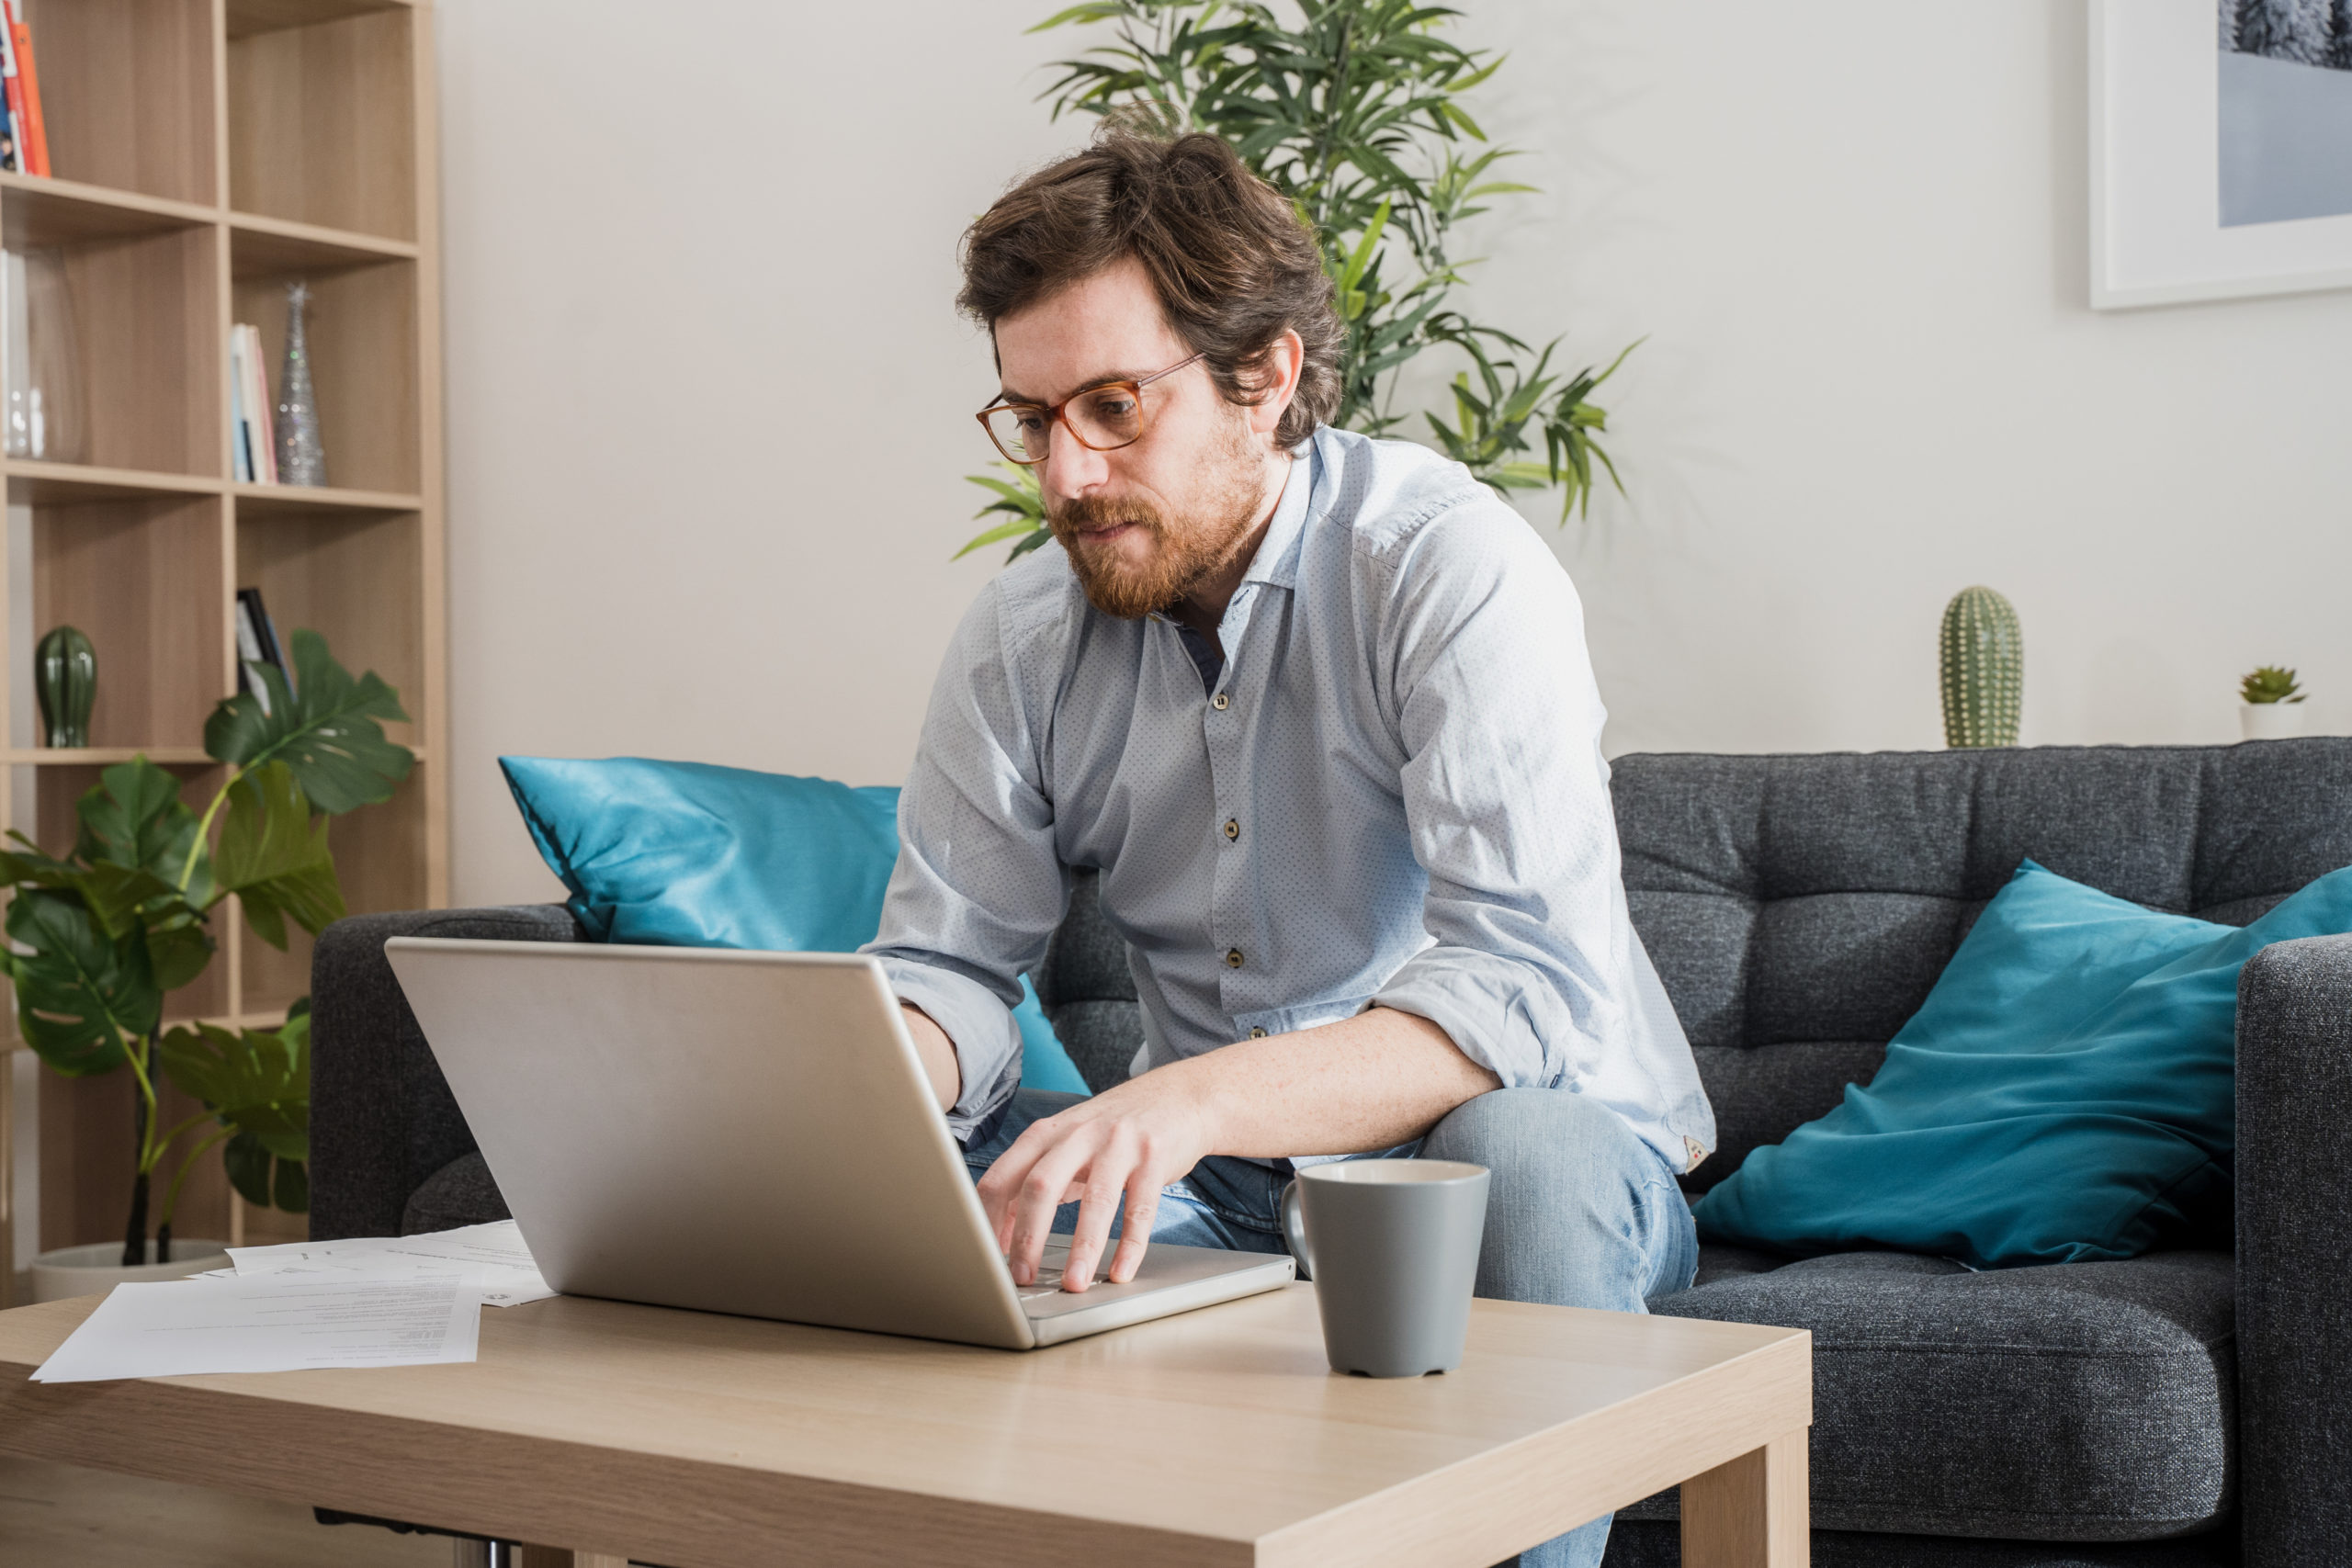 The Top Risks in Remote Working